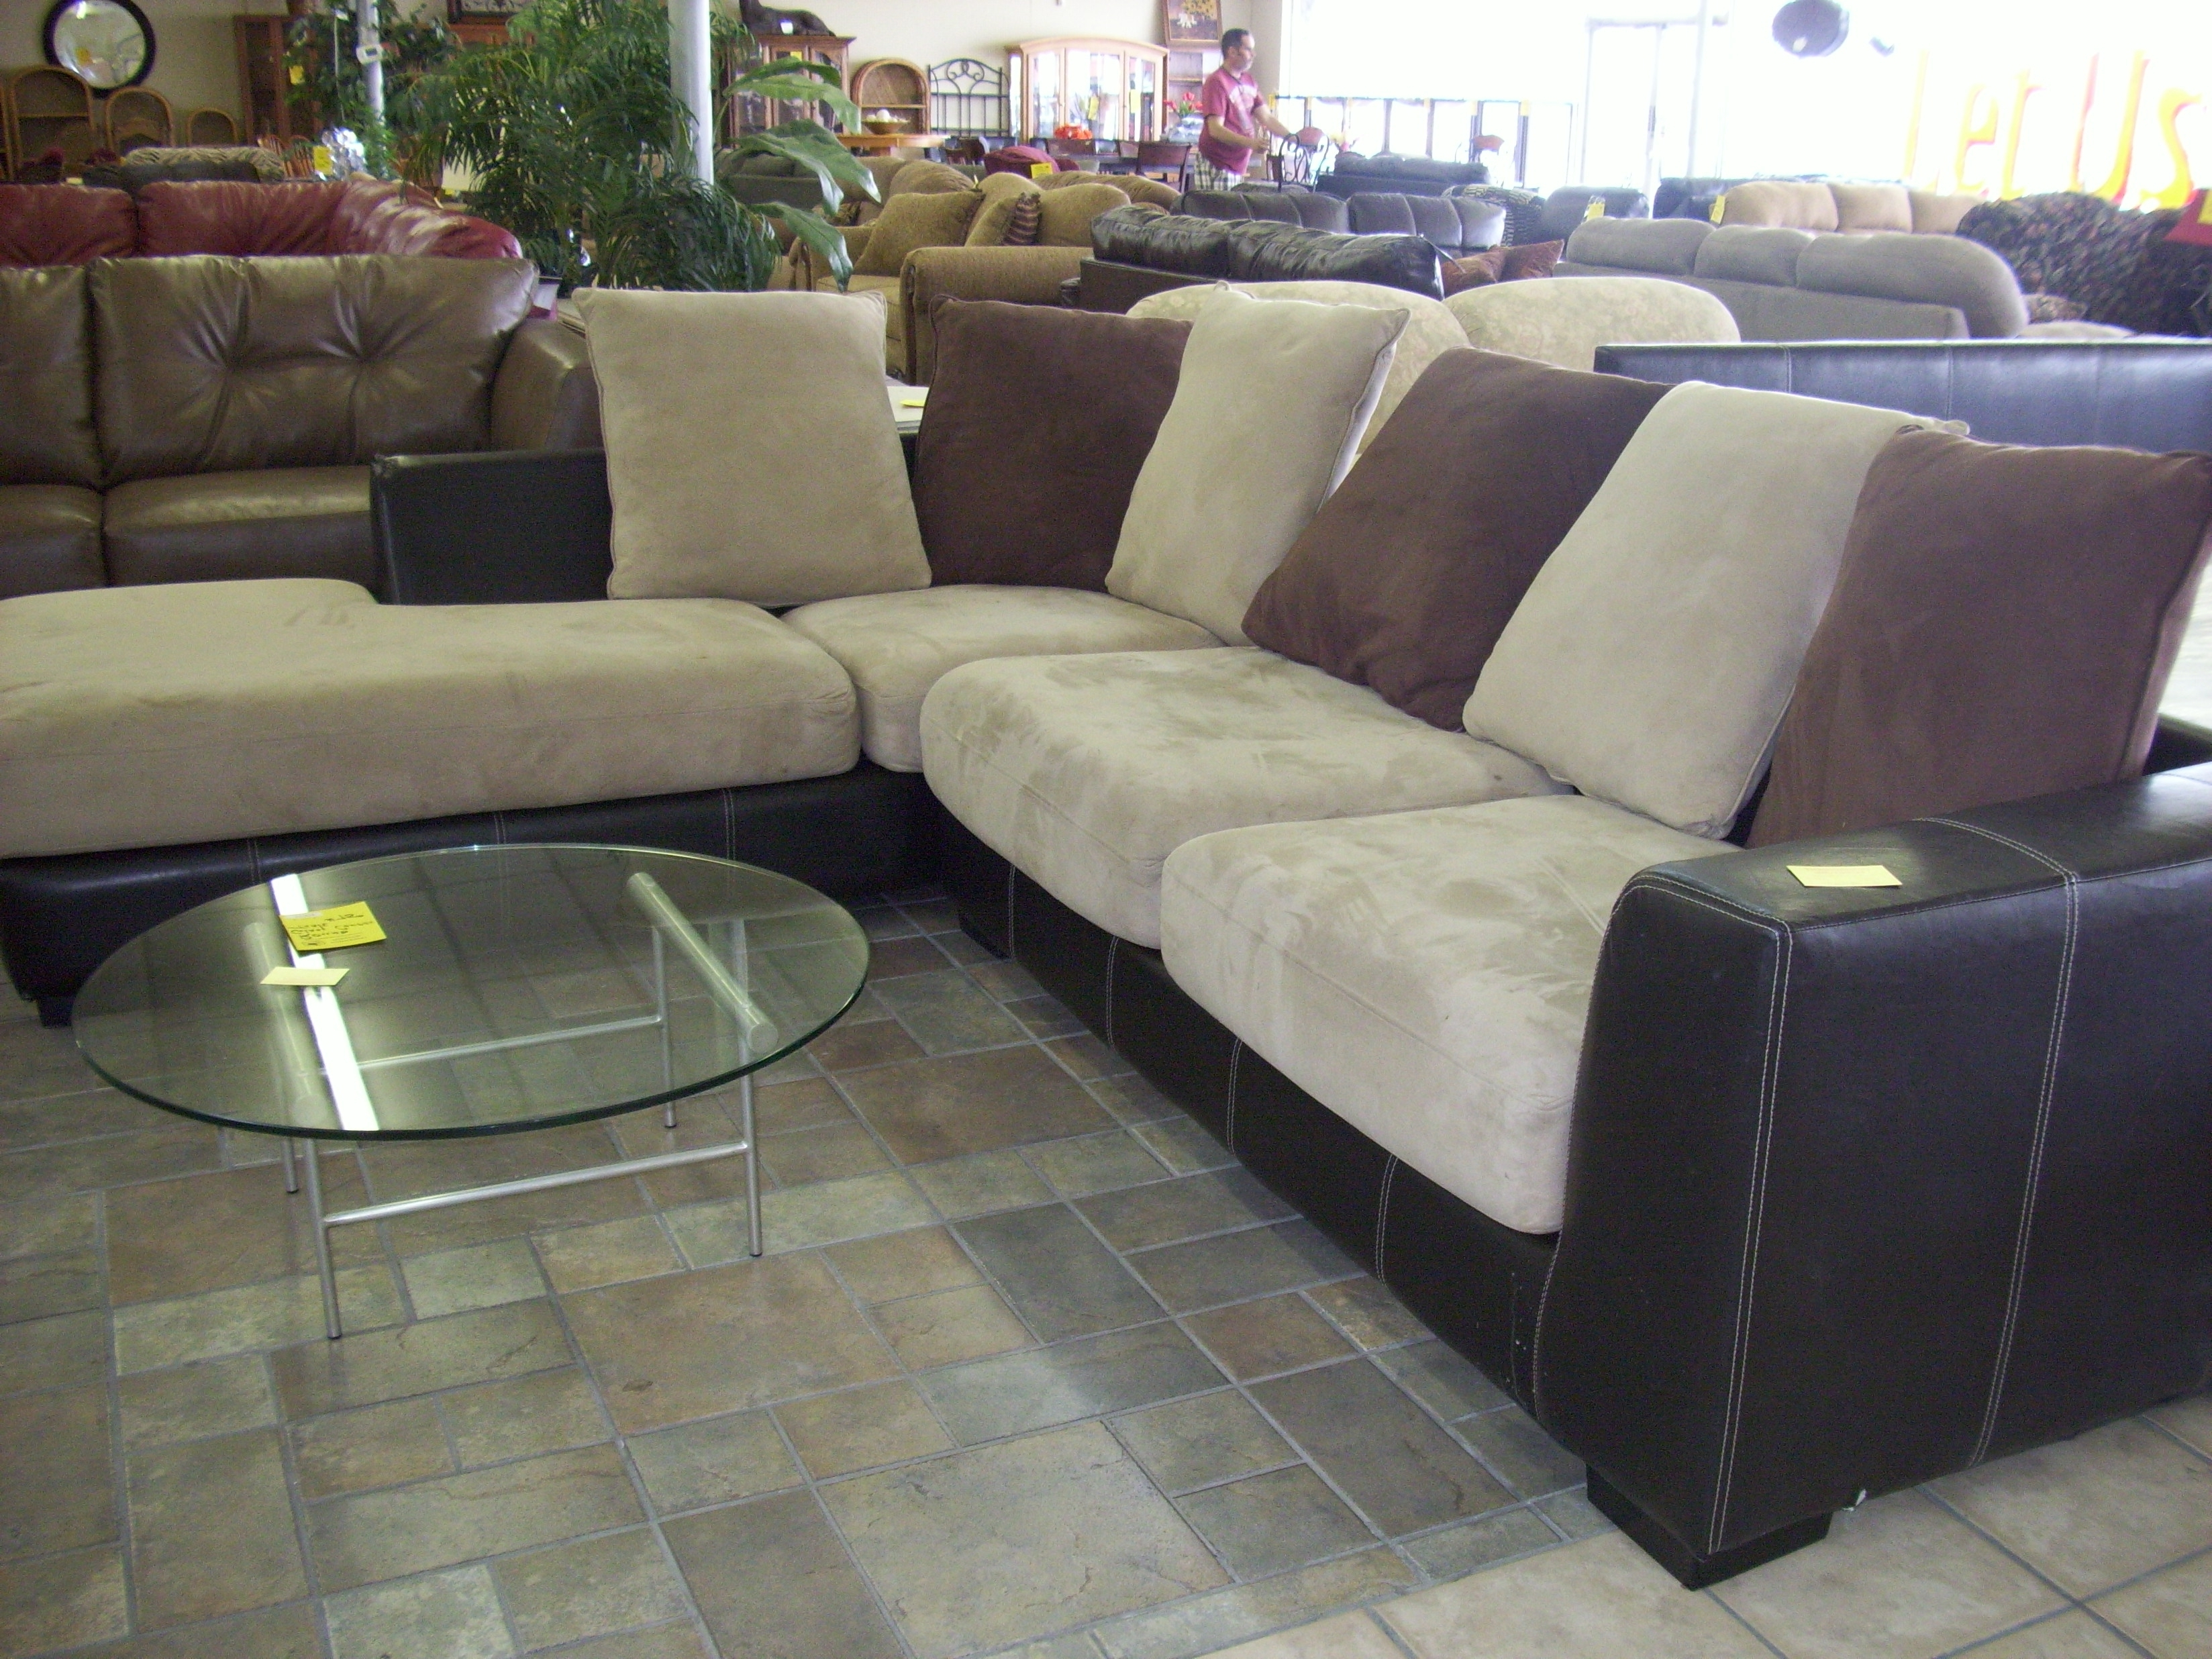 Most Recently Released Leather And Suede Sectional Couches • Leather Sofa With Leather And Suede Sectional Sofas (View 3 of 20)